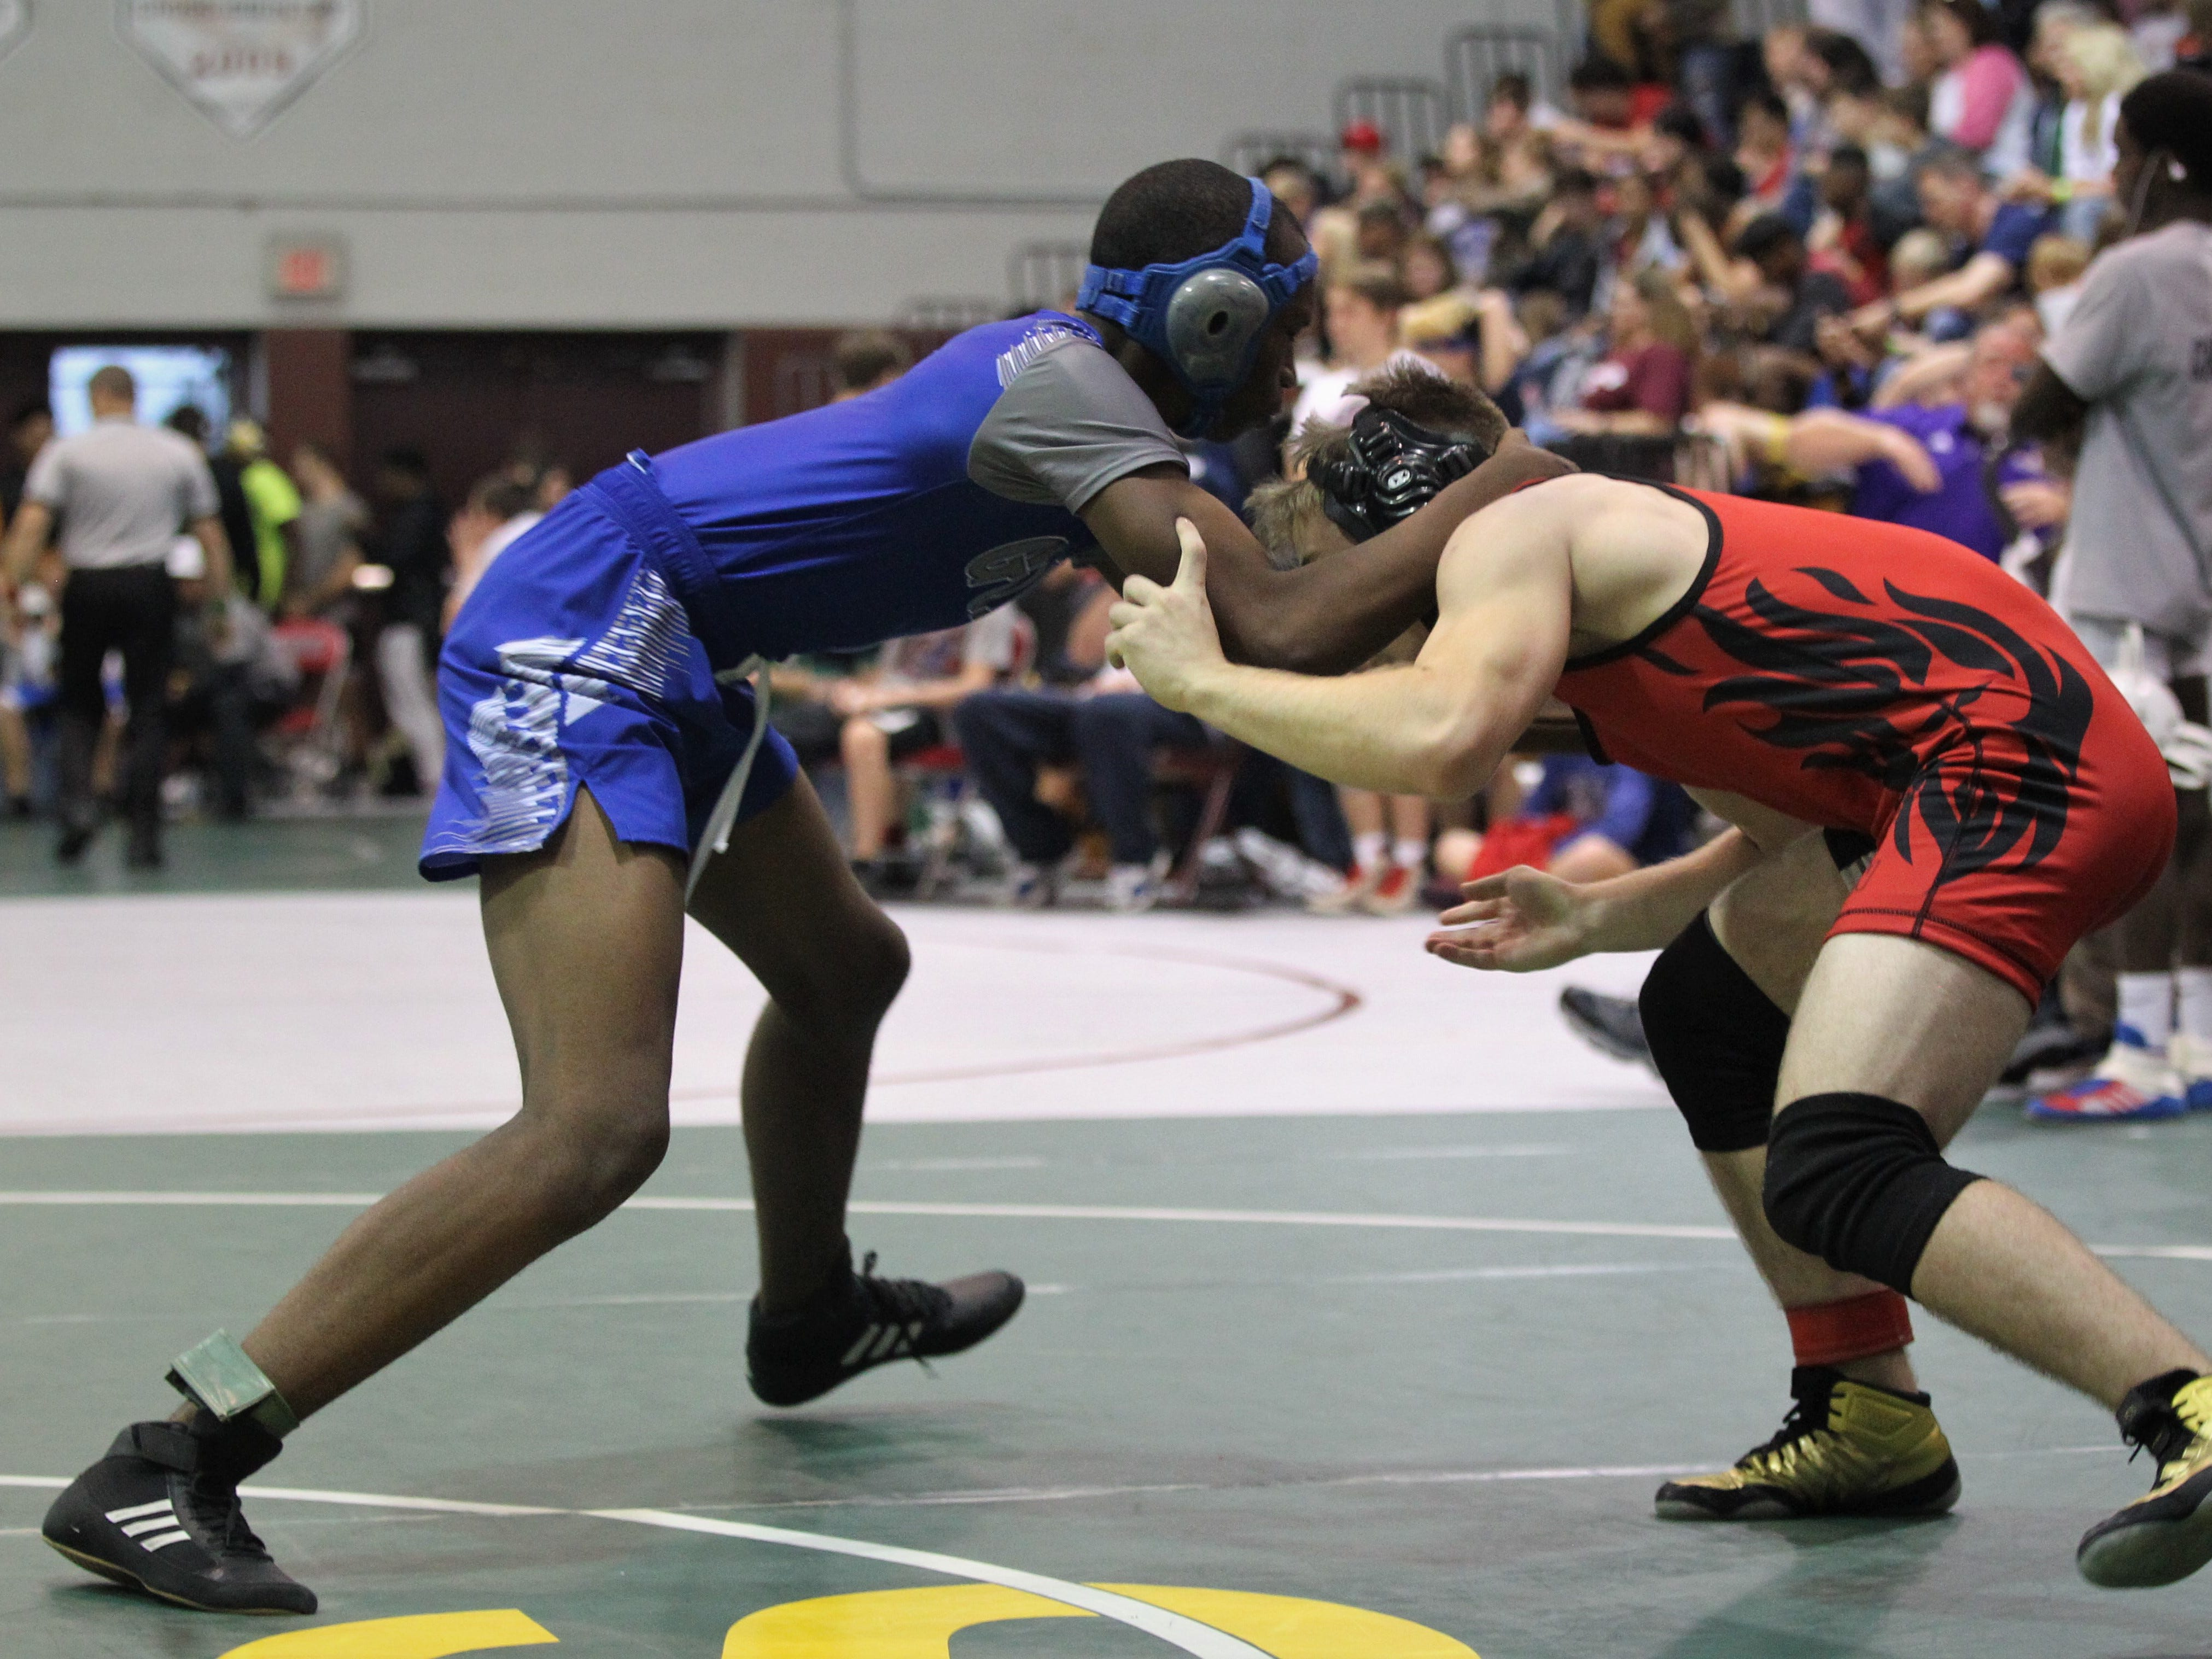 Godby junior Madison Melton wrestles Leon junior Ethan Eudy at 145 pounds during the 2018 Capital City Classic wrestling tournament at Chiles High School.